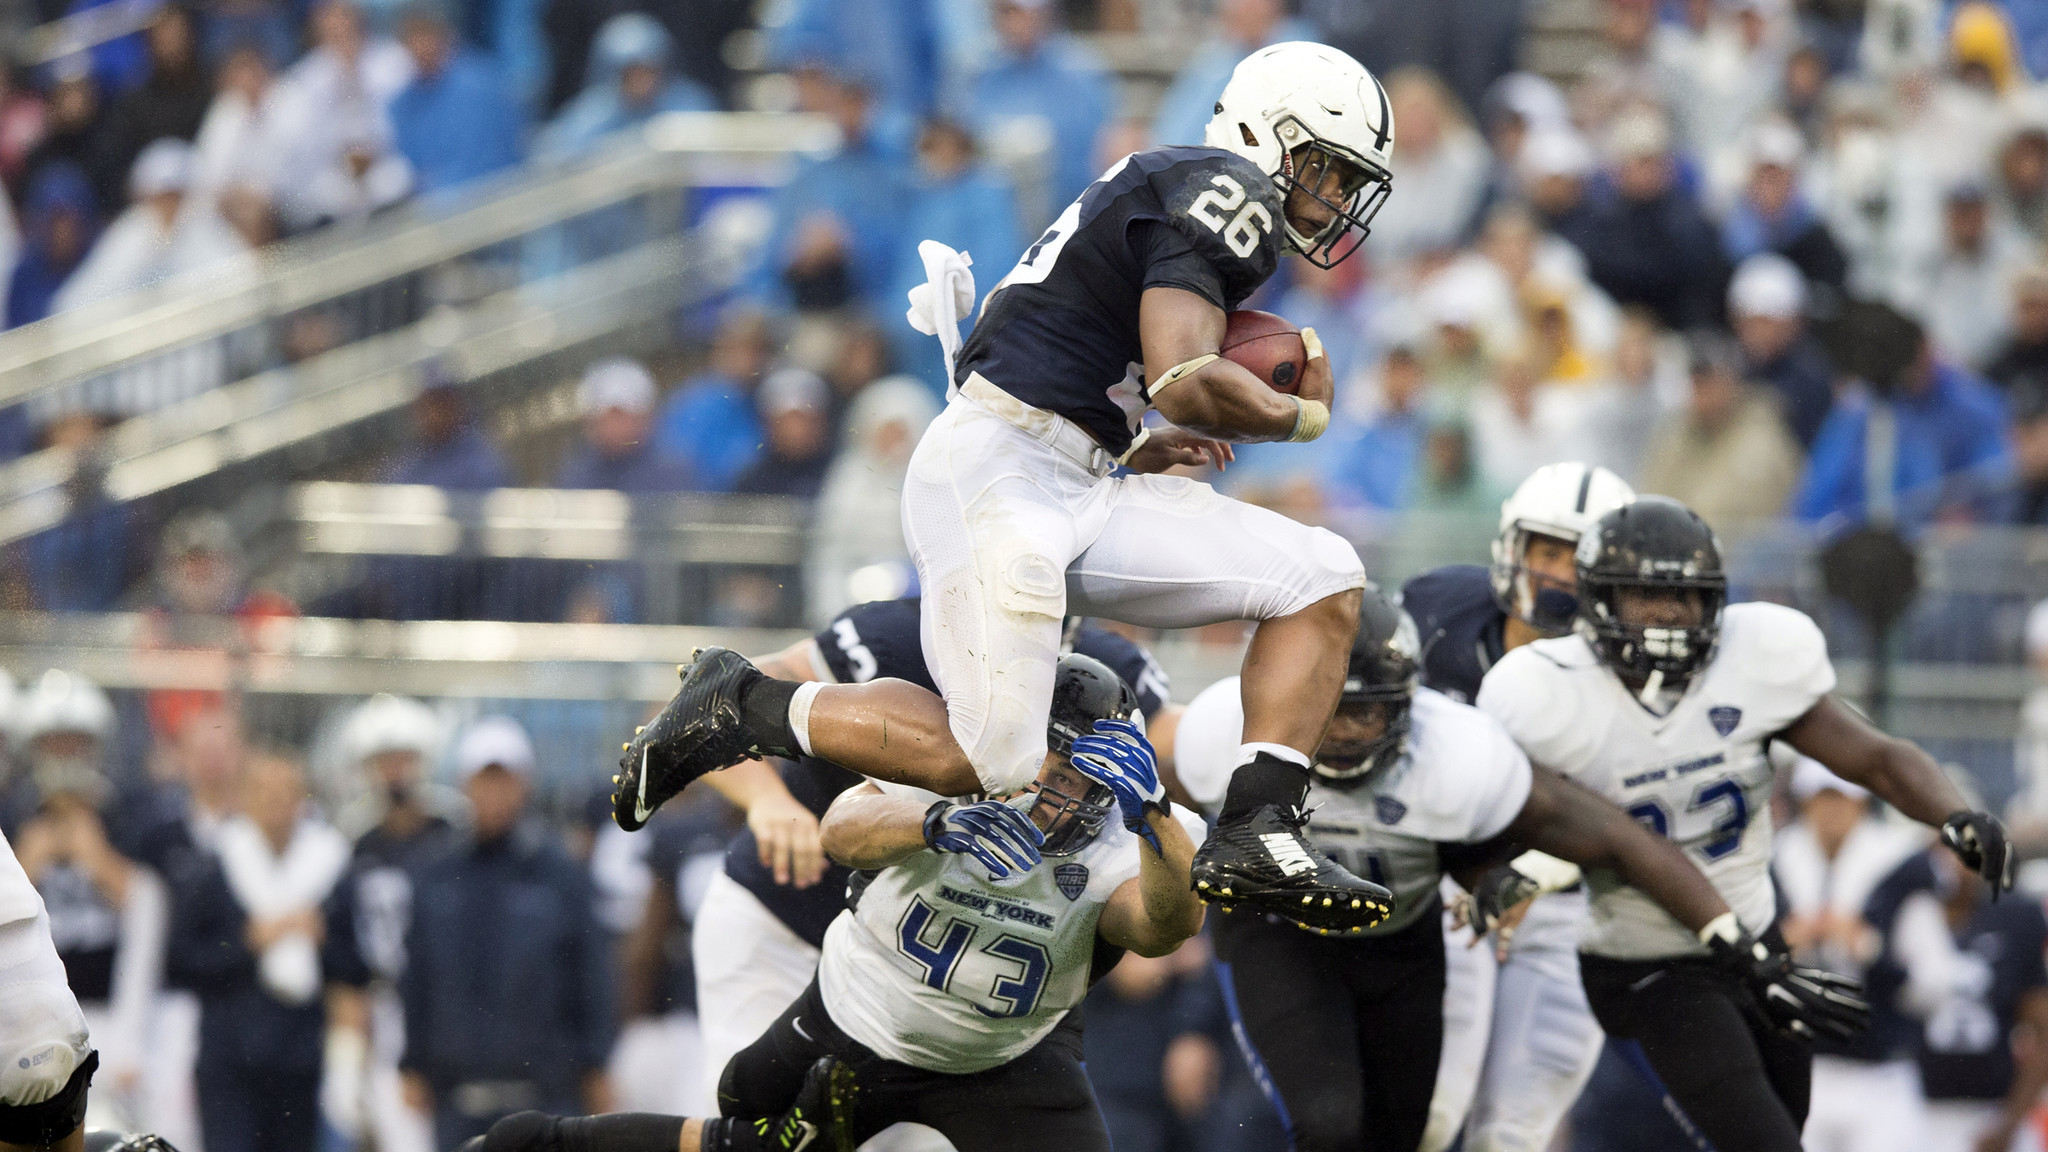 PICTURES: What's next for Penn State's Saquon Barkley? – The Morning Call